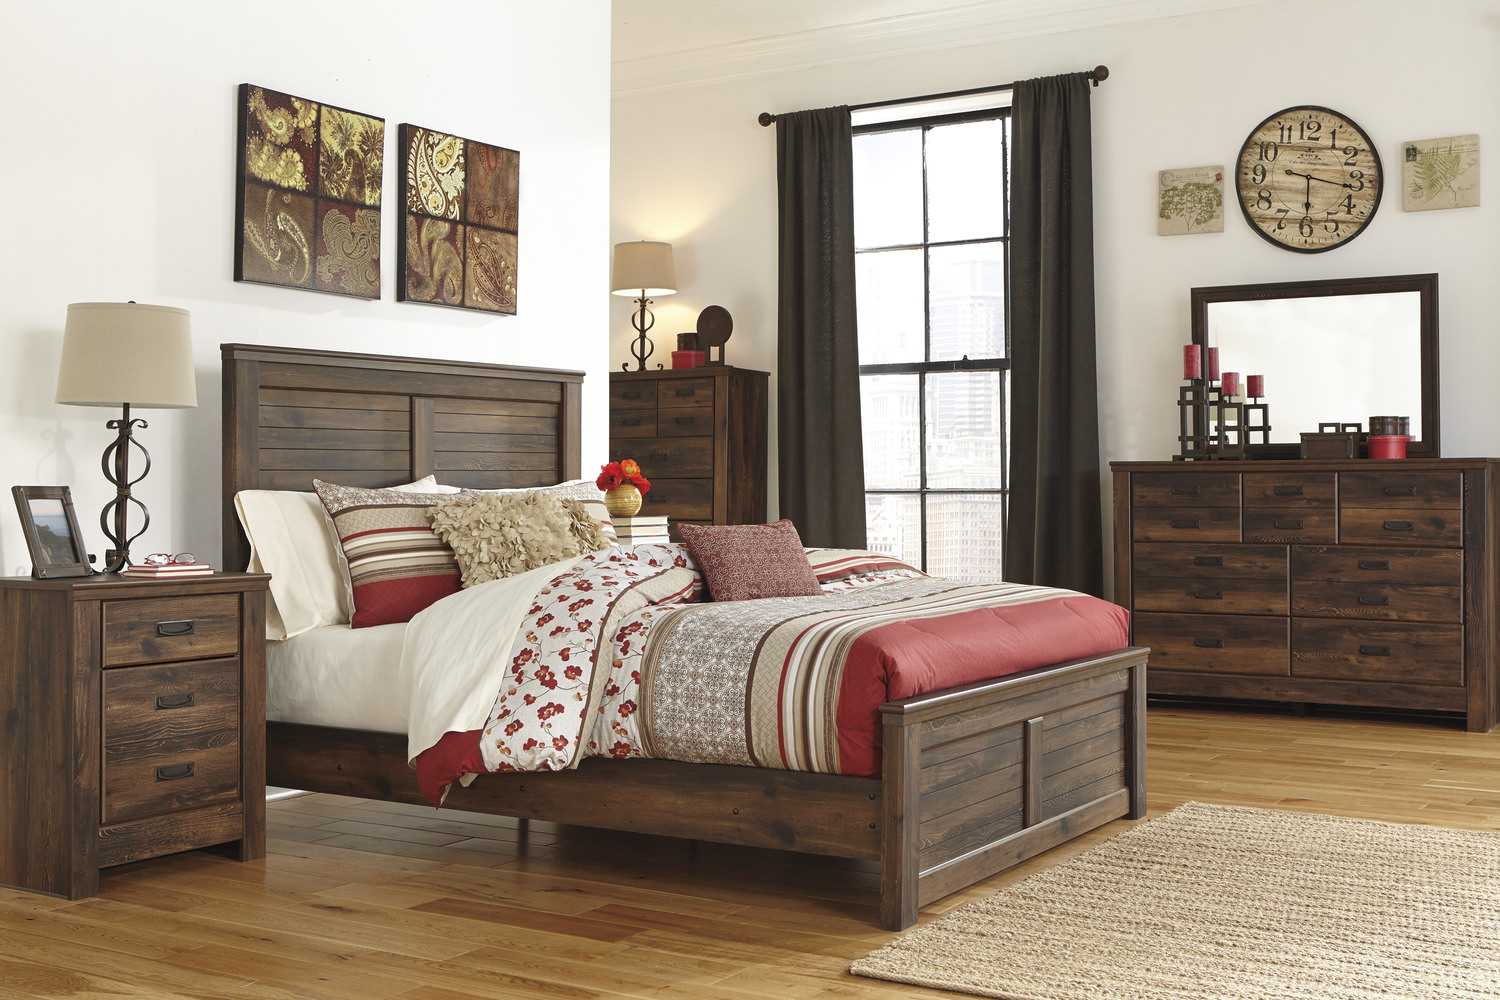 Dakota bedroom furniture